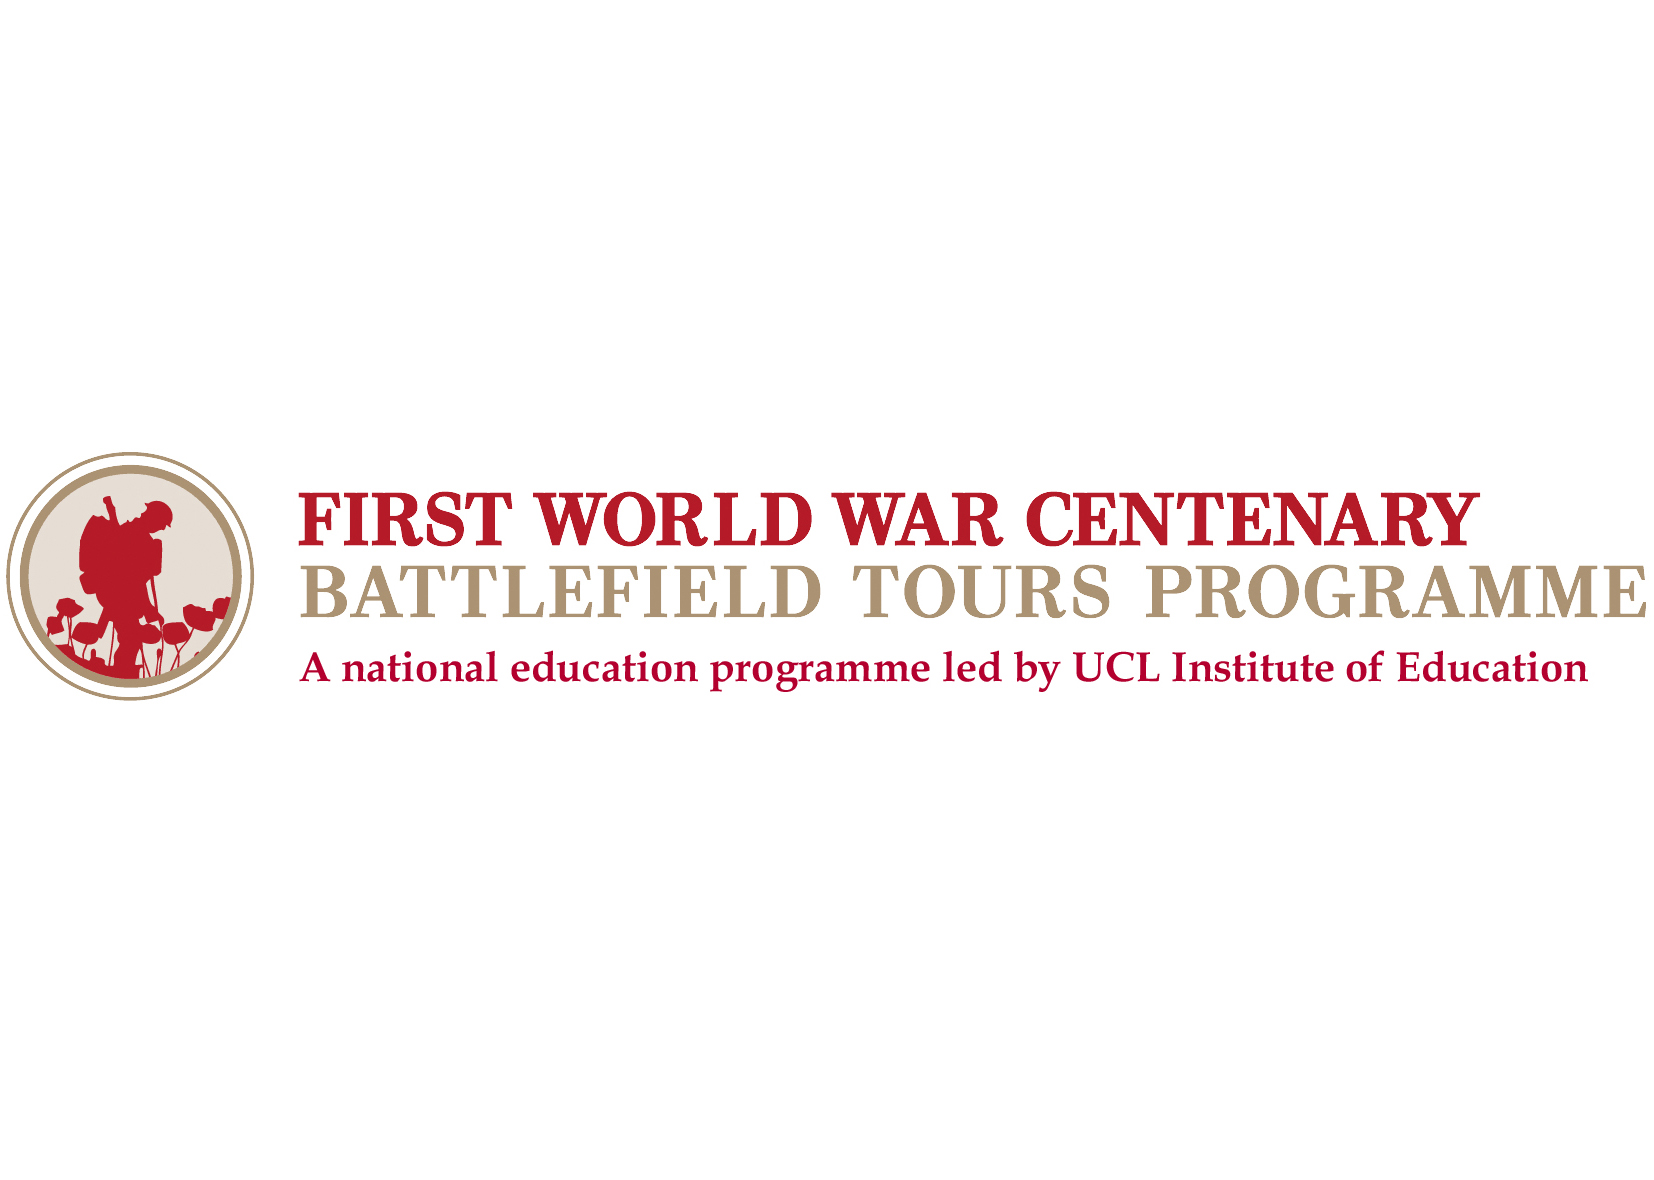 First world war battlefields logo.jpg